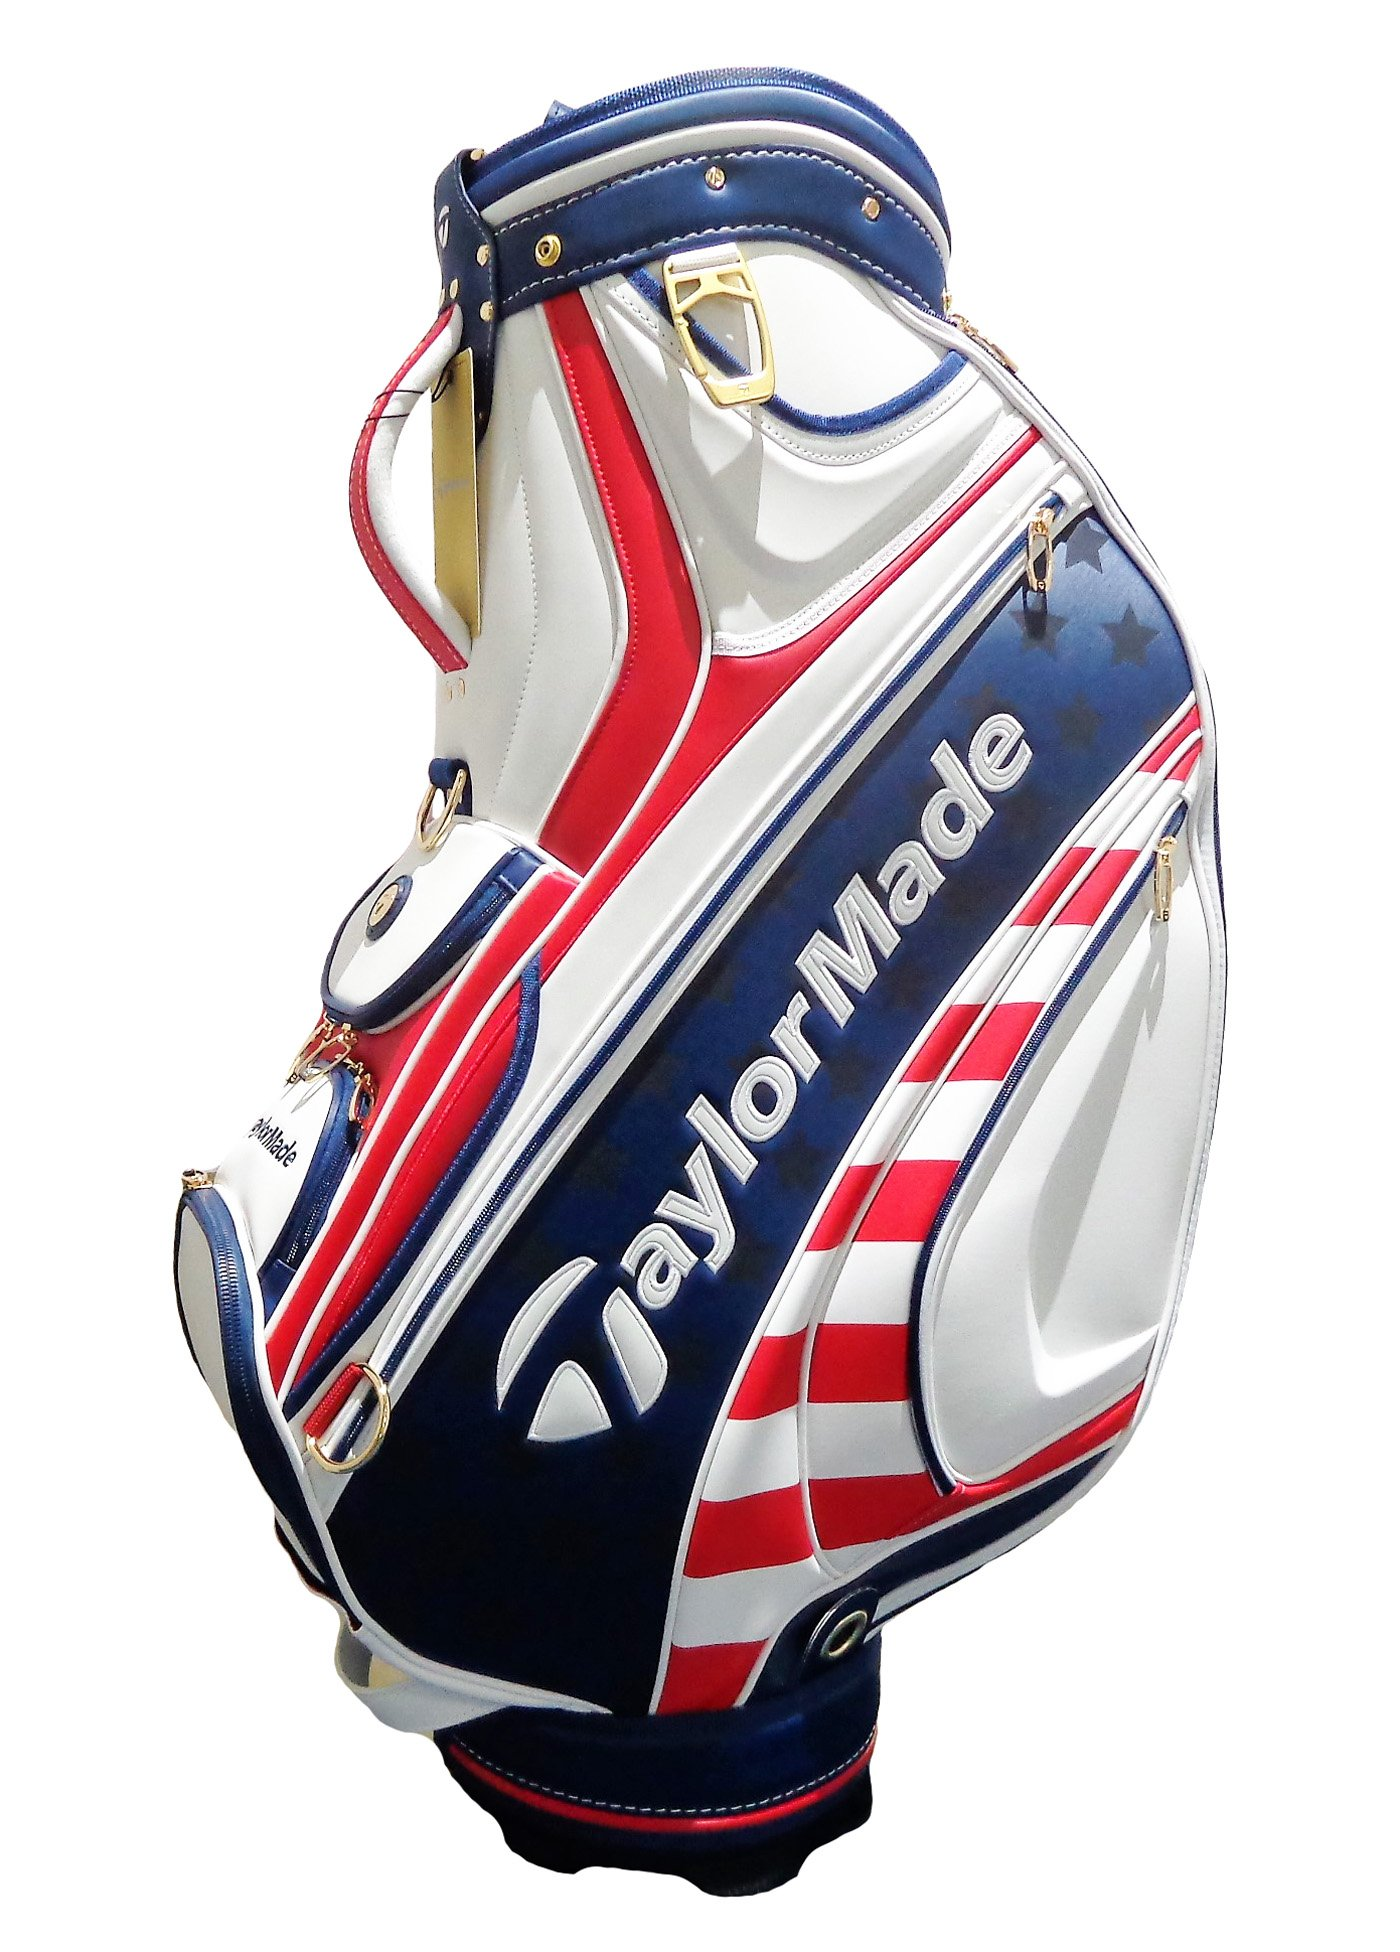 TaylorMade 2017 US Open Limited Edition Golf Staff Bag